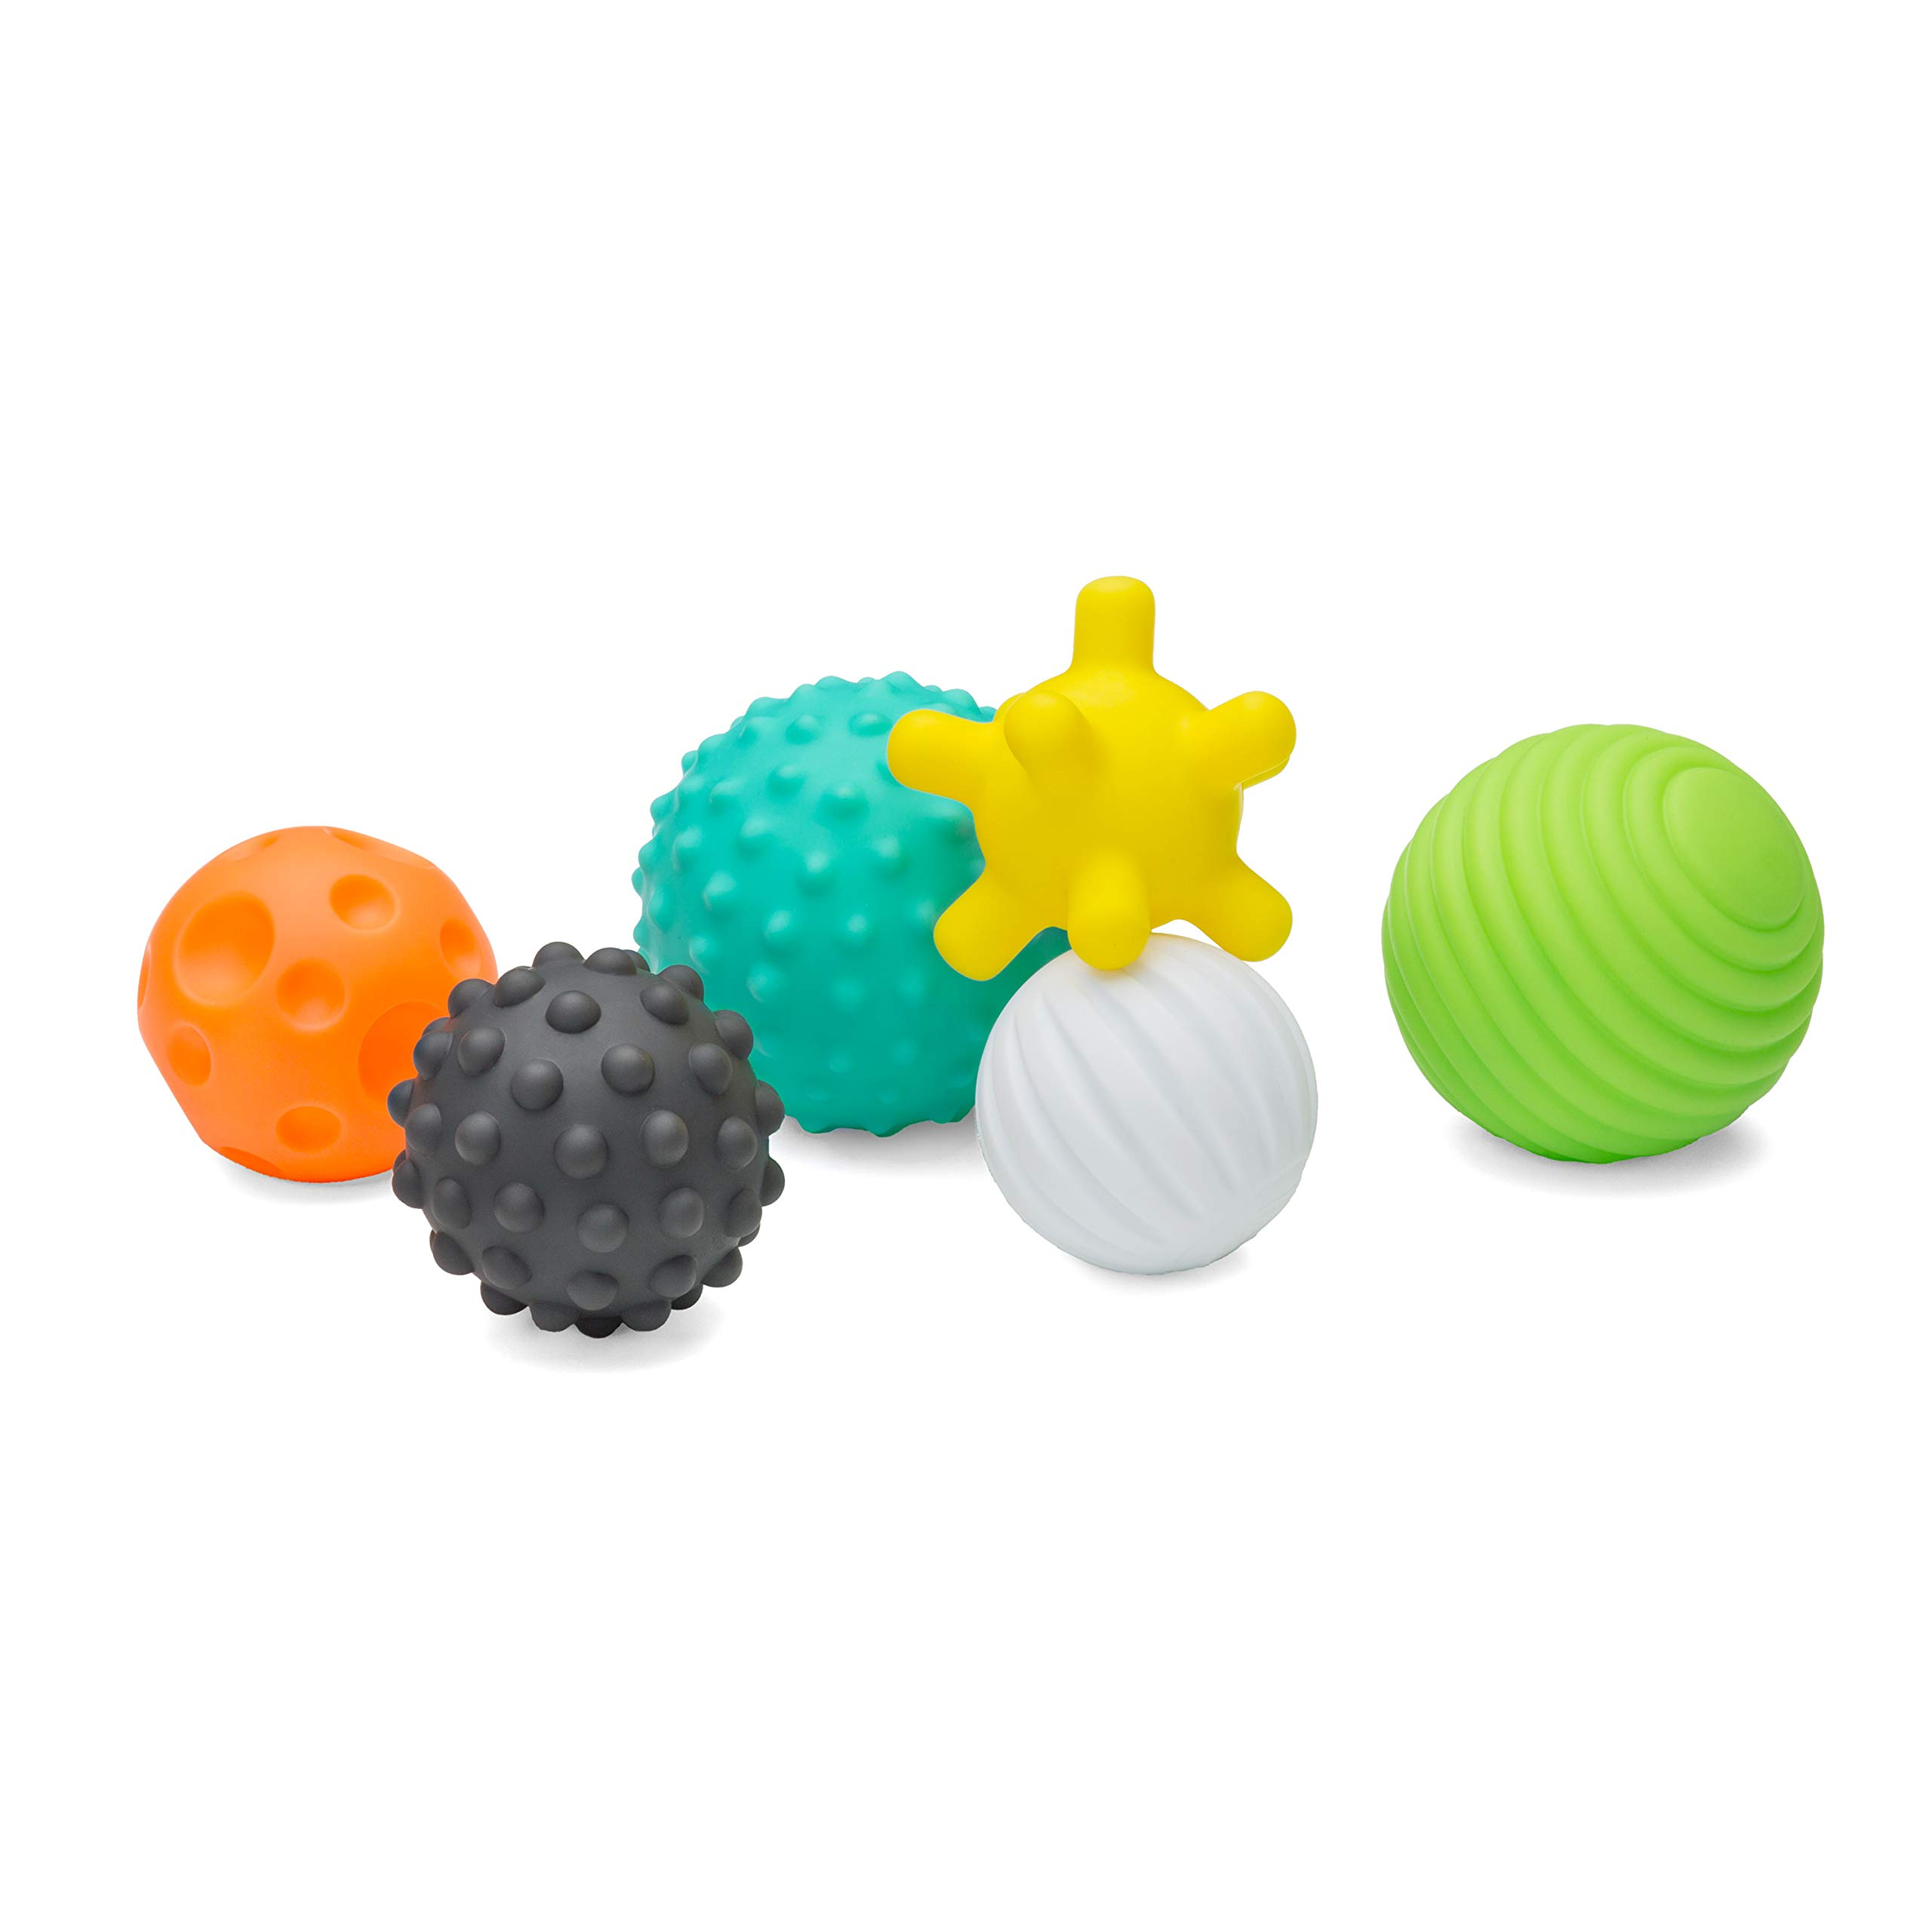 Infantino Textured Multi Ball Set by Infantino